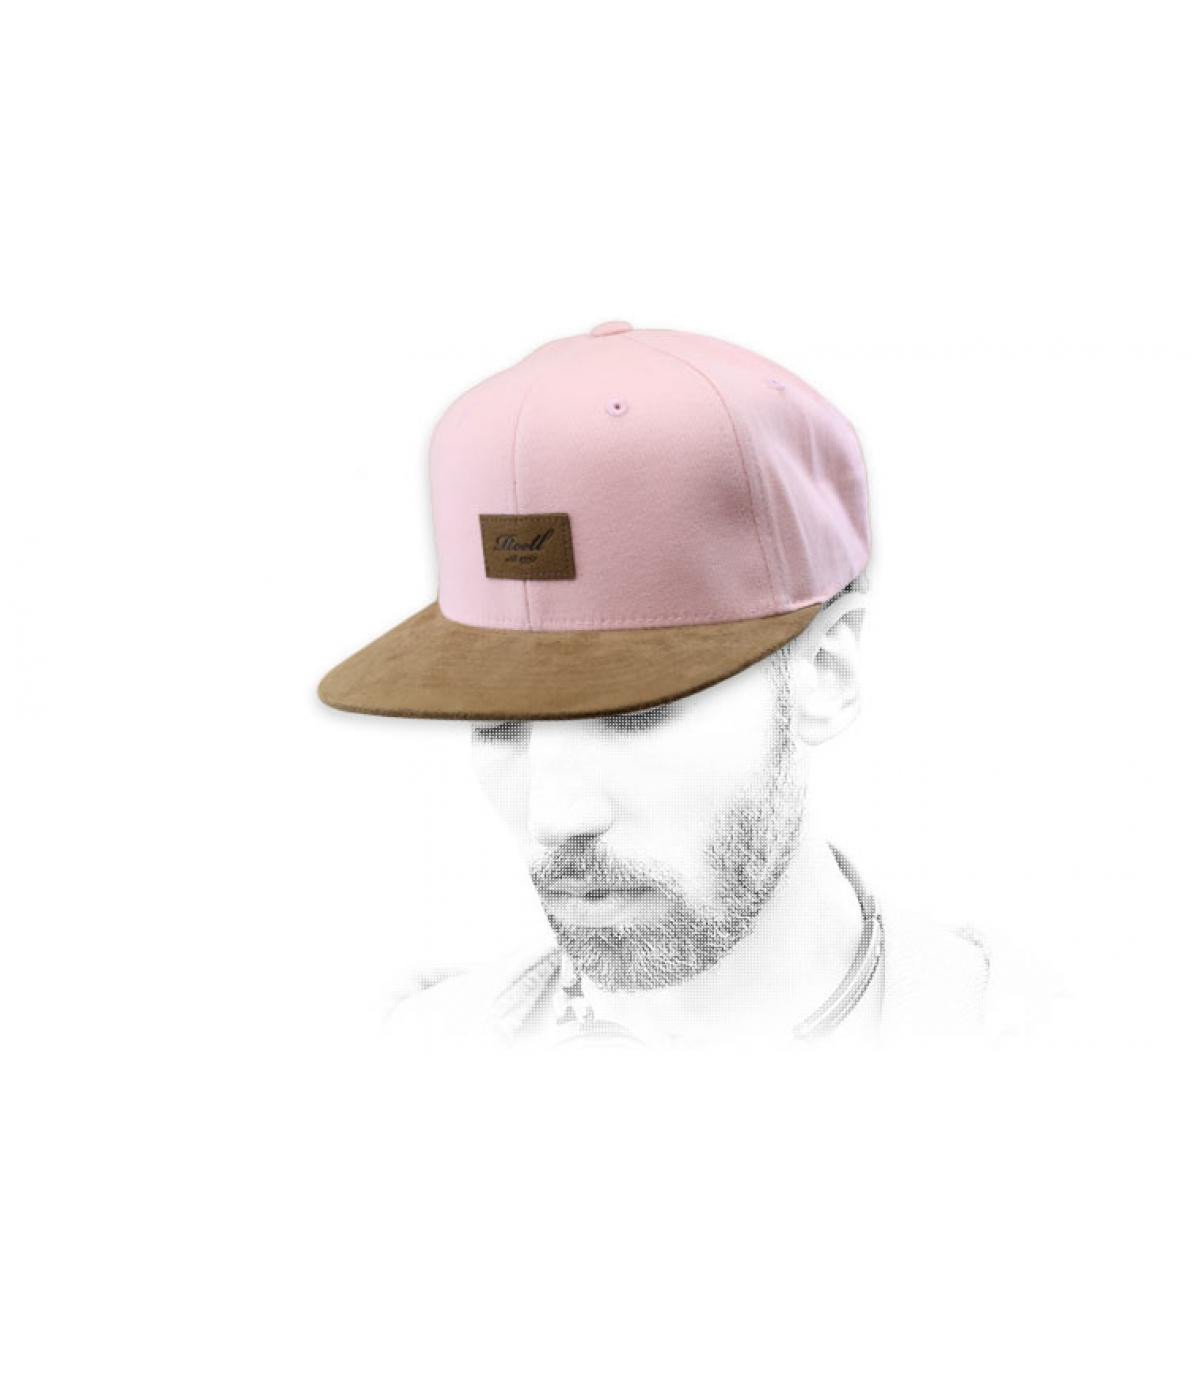 Reell snapback pink suede